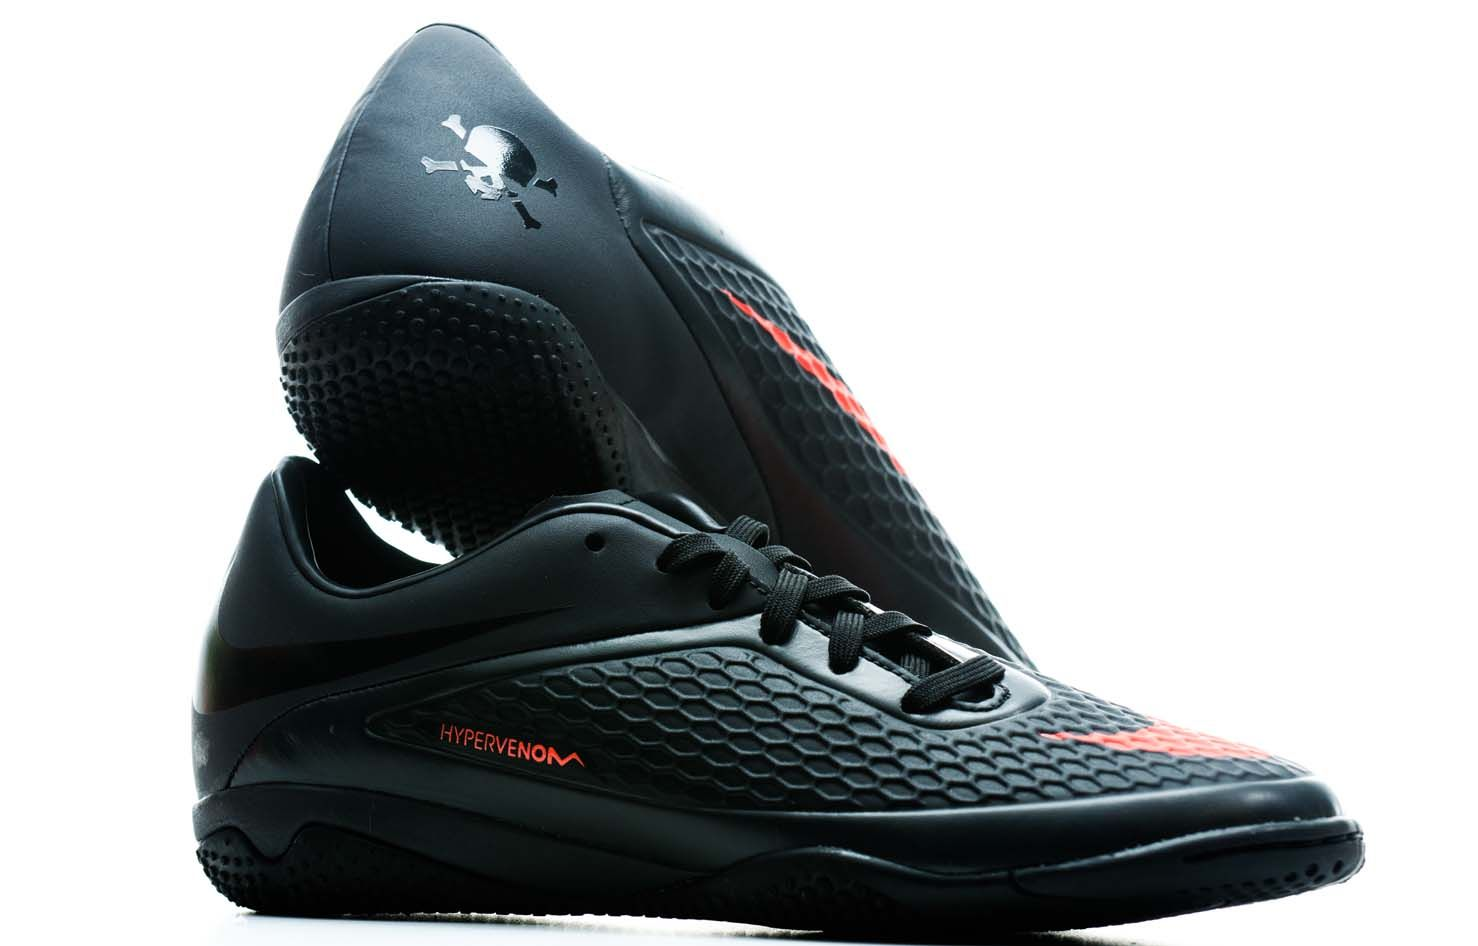 Nike Hypervenom Phelon Indoor Soccer Shoes Charcoal 67 49 Nike Soccer Shoes Soccer Shoes Football Shoes